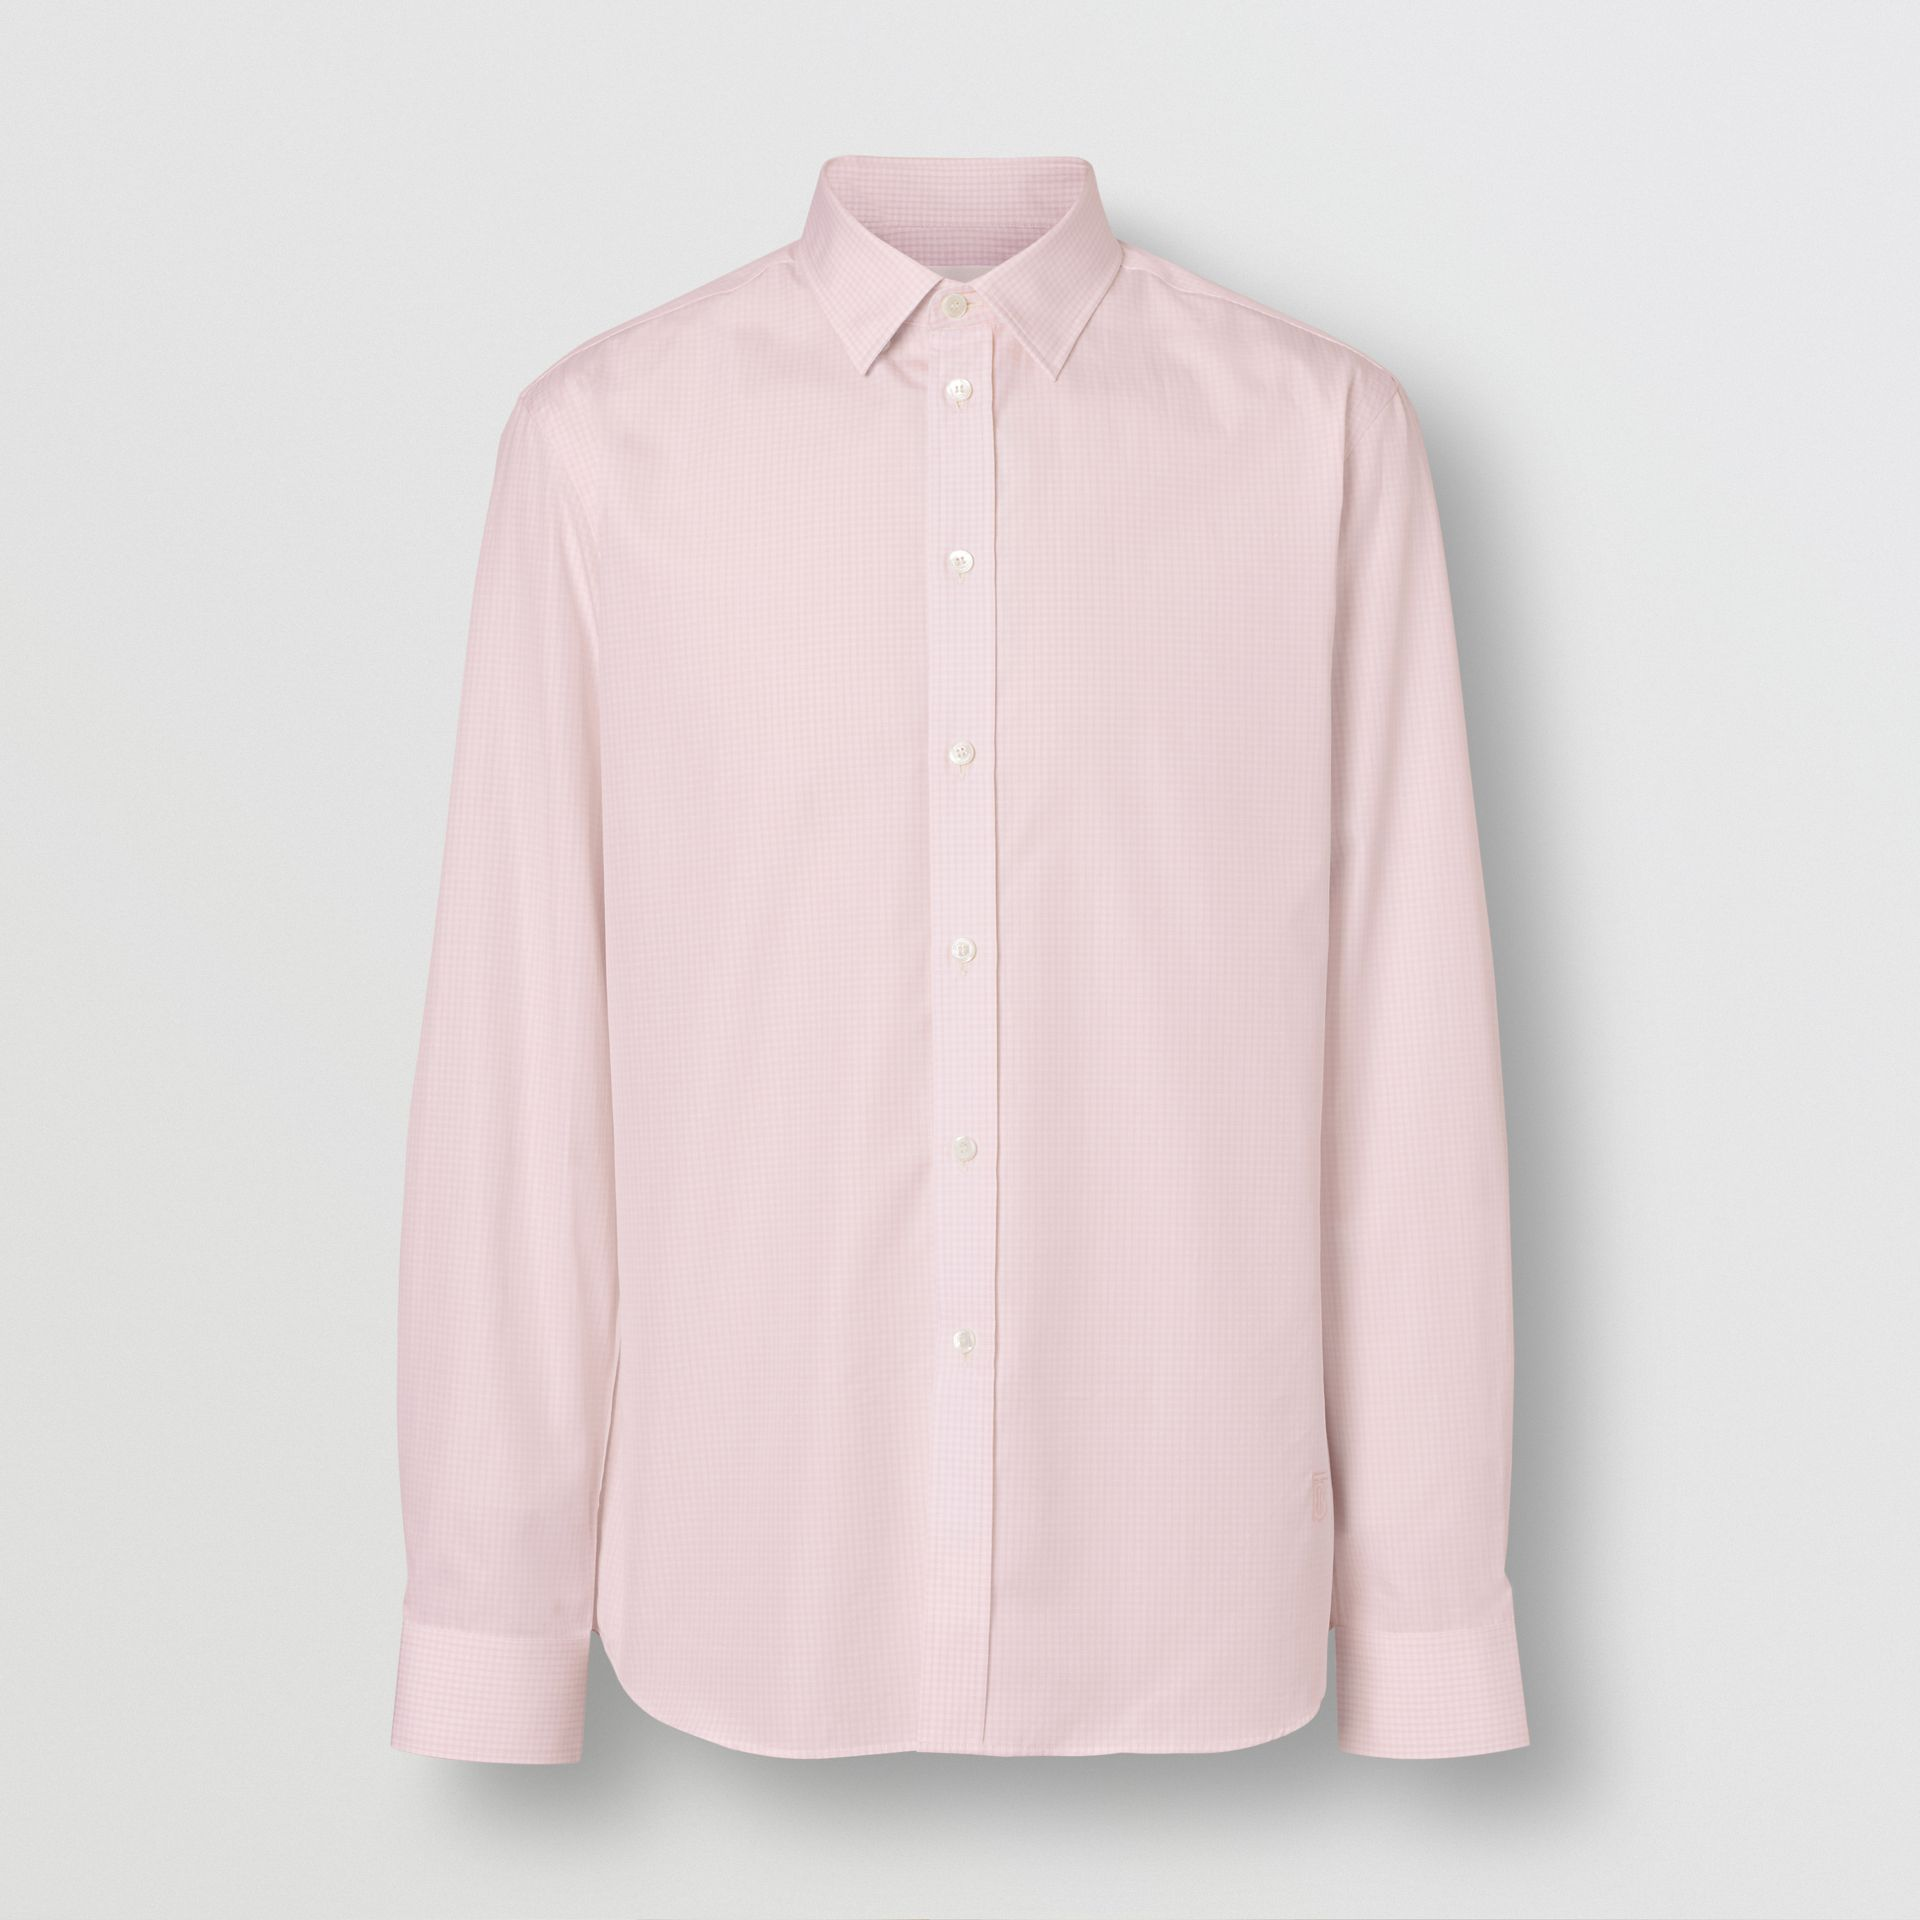 Slim Fit Micro Check Cotton Poplin Shirt in Alabaster Pink - Men | Burberry Australia - gallery image 3